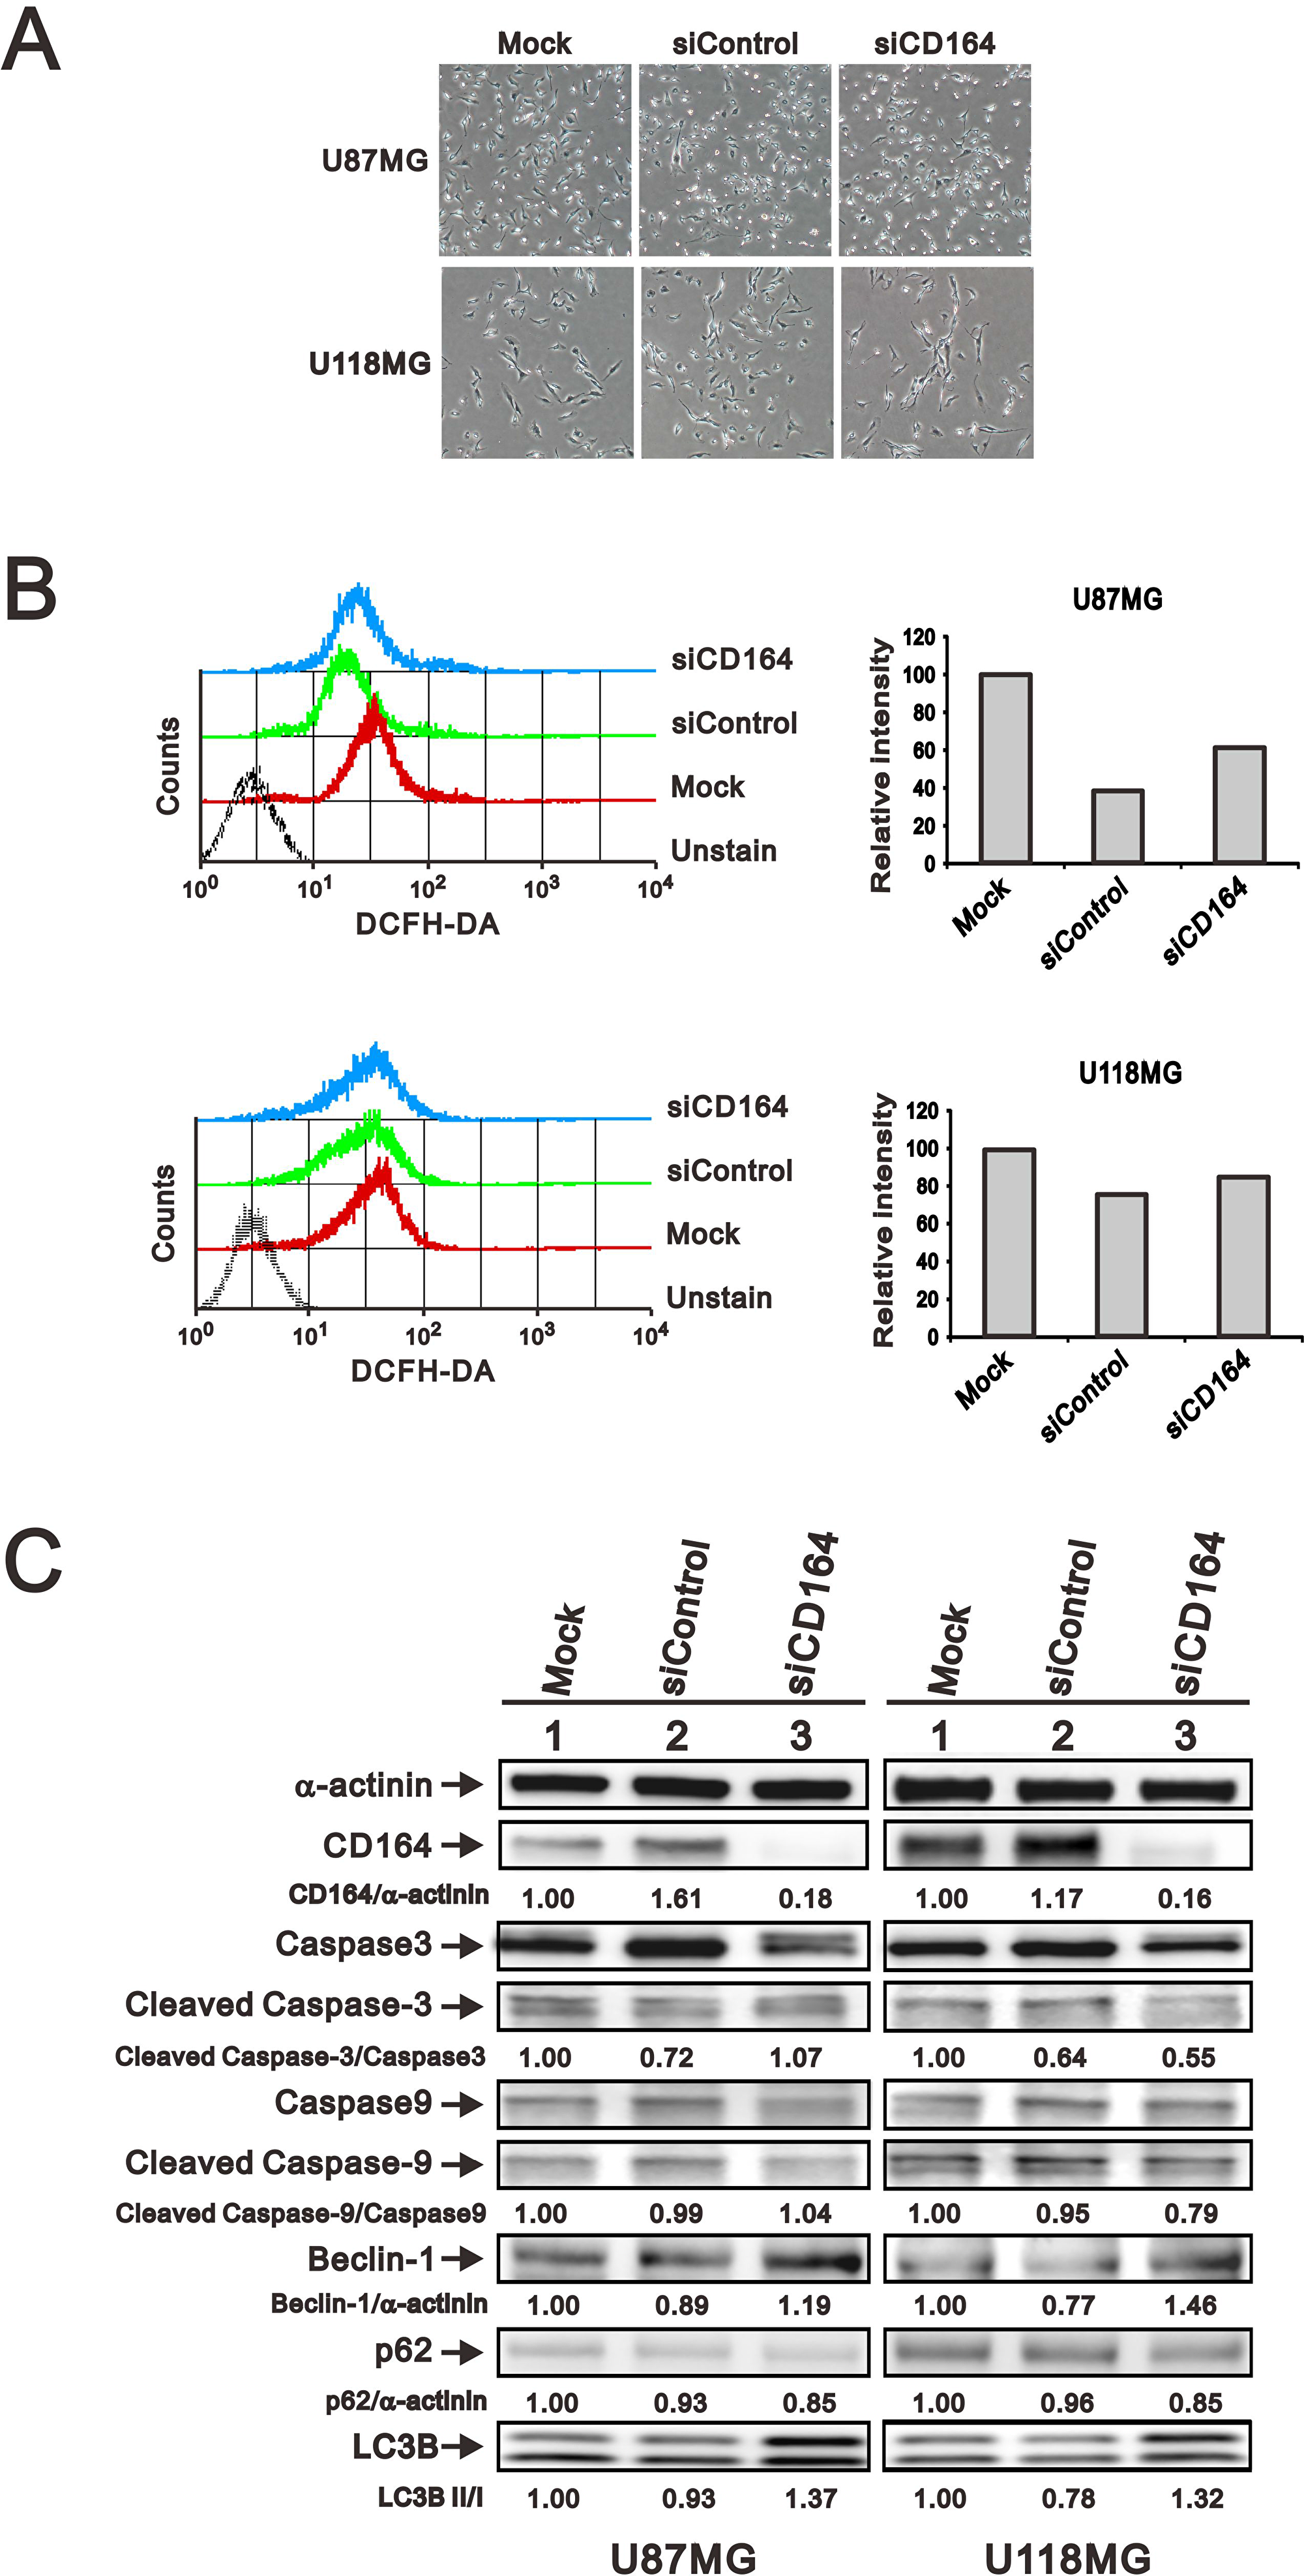 Effects of CD164 depletion on apoptosis, autophagy, and senescence in GBM cells.